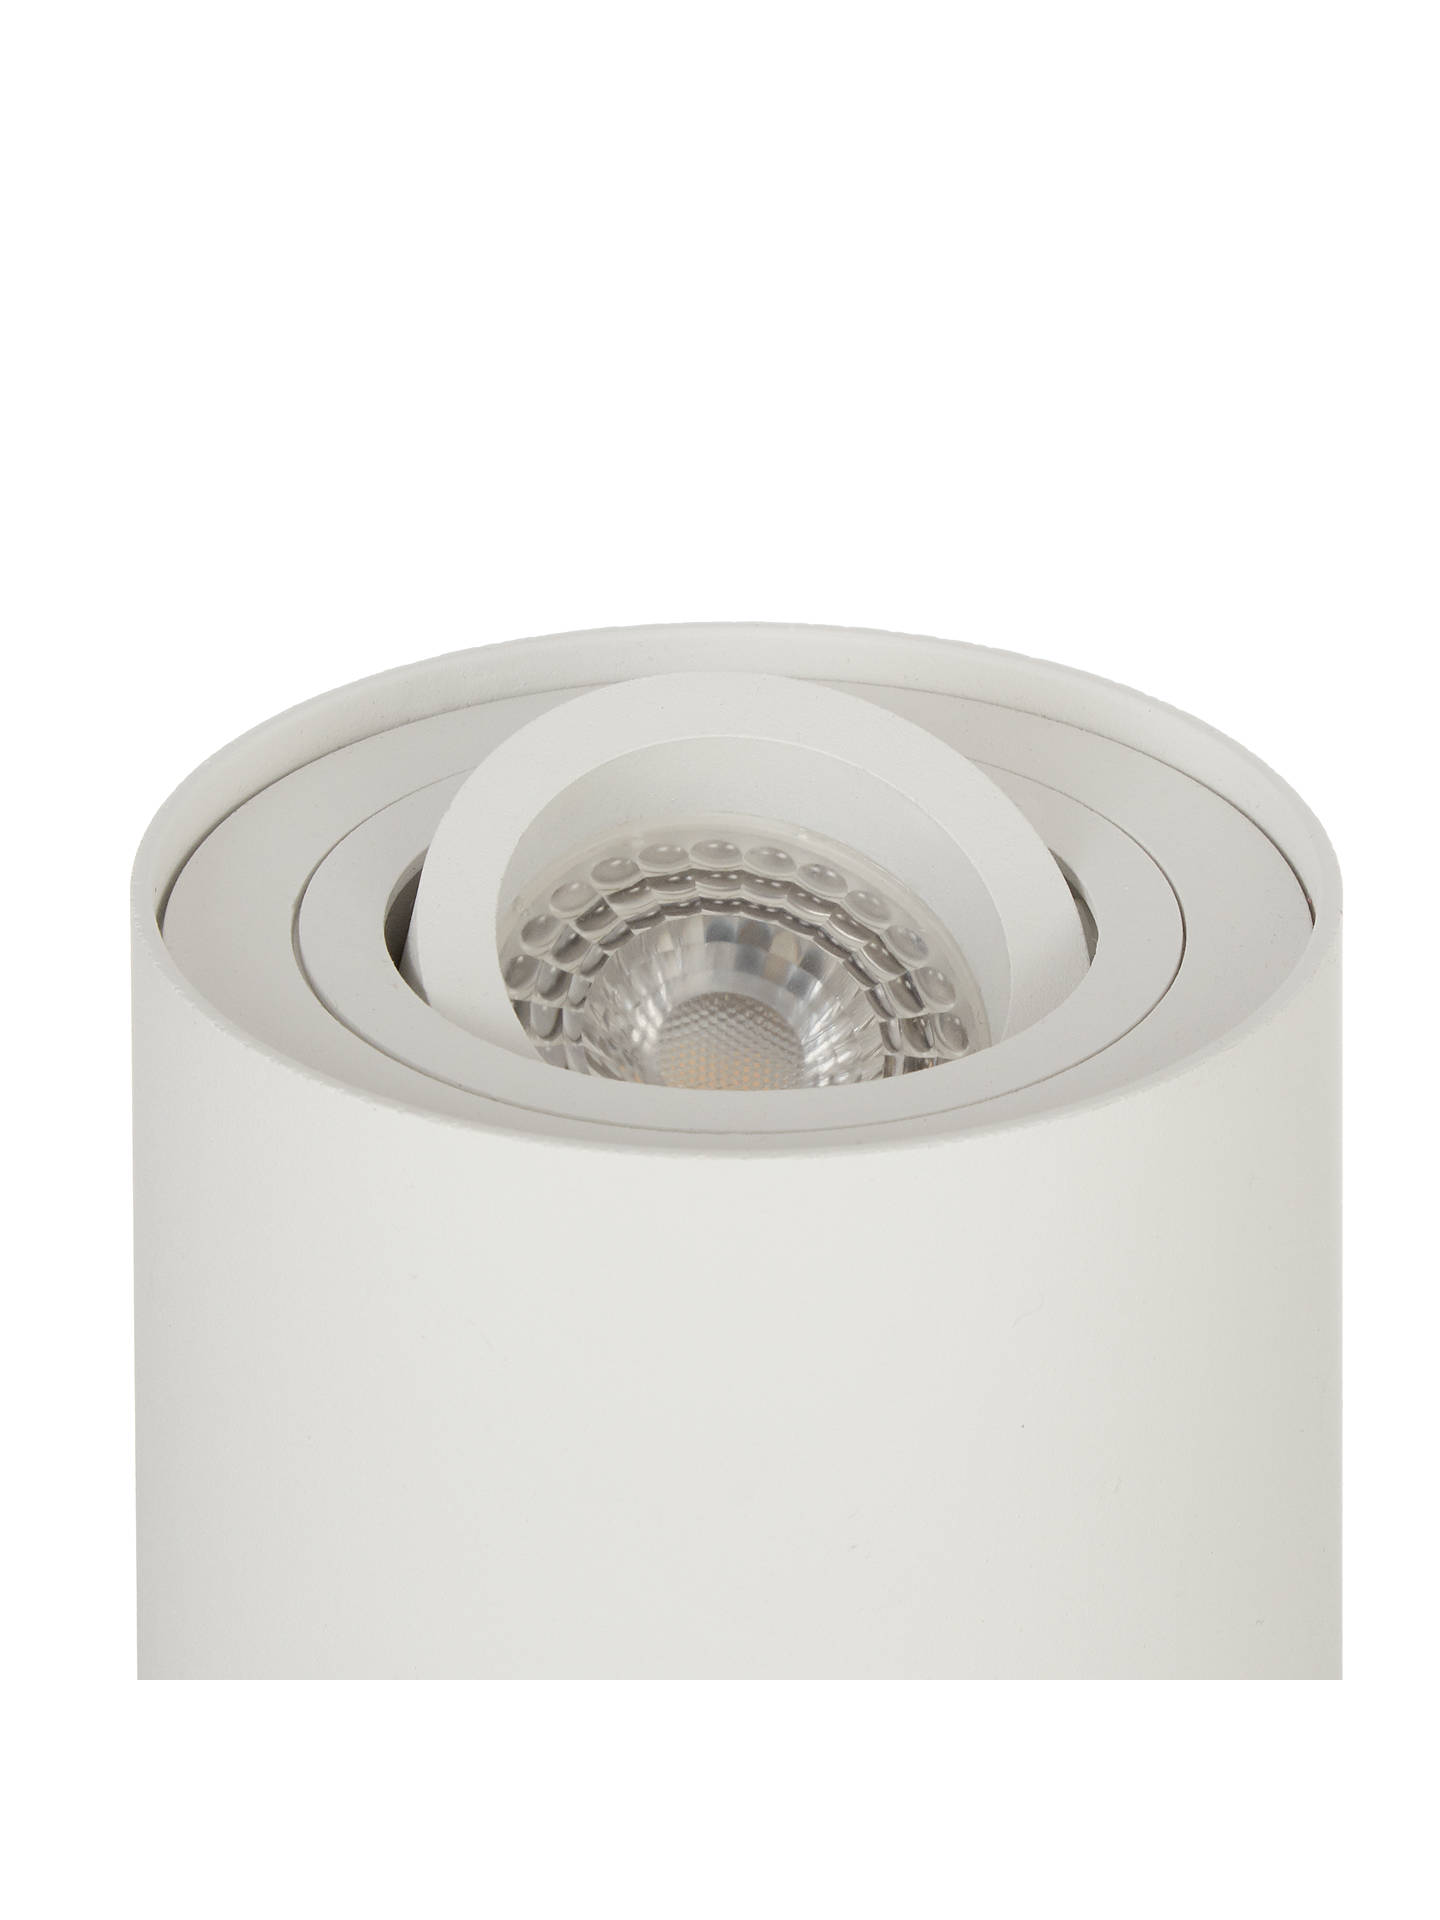 BuyJohn Lewis & Partners Pitch Tilt LED Uplighter Table Lamp, White Online at johnlewis.com